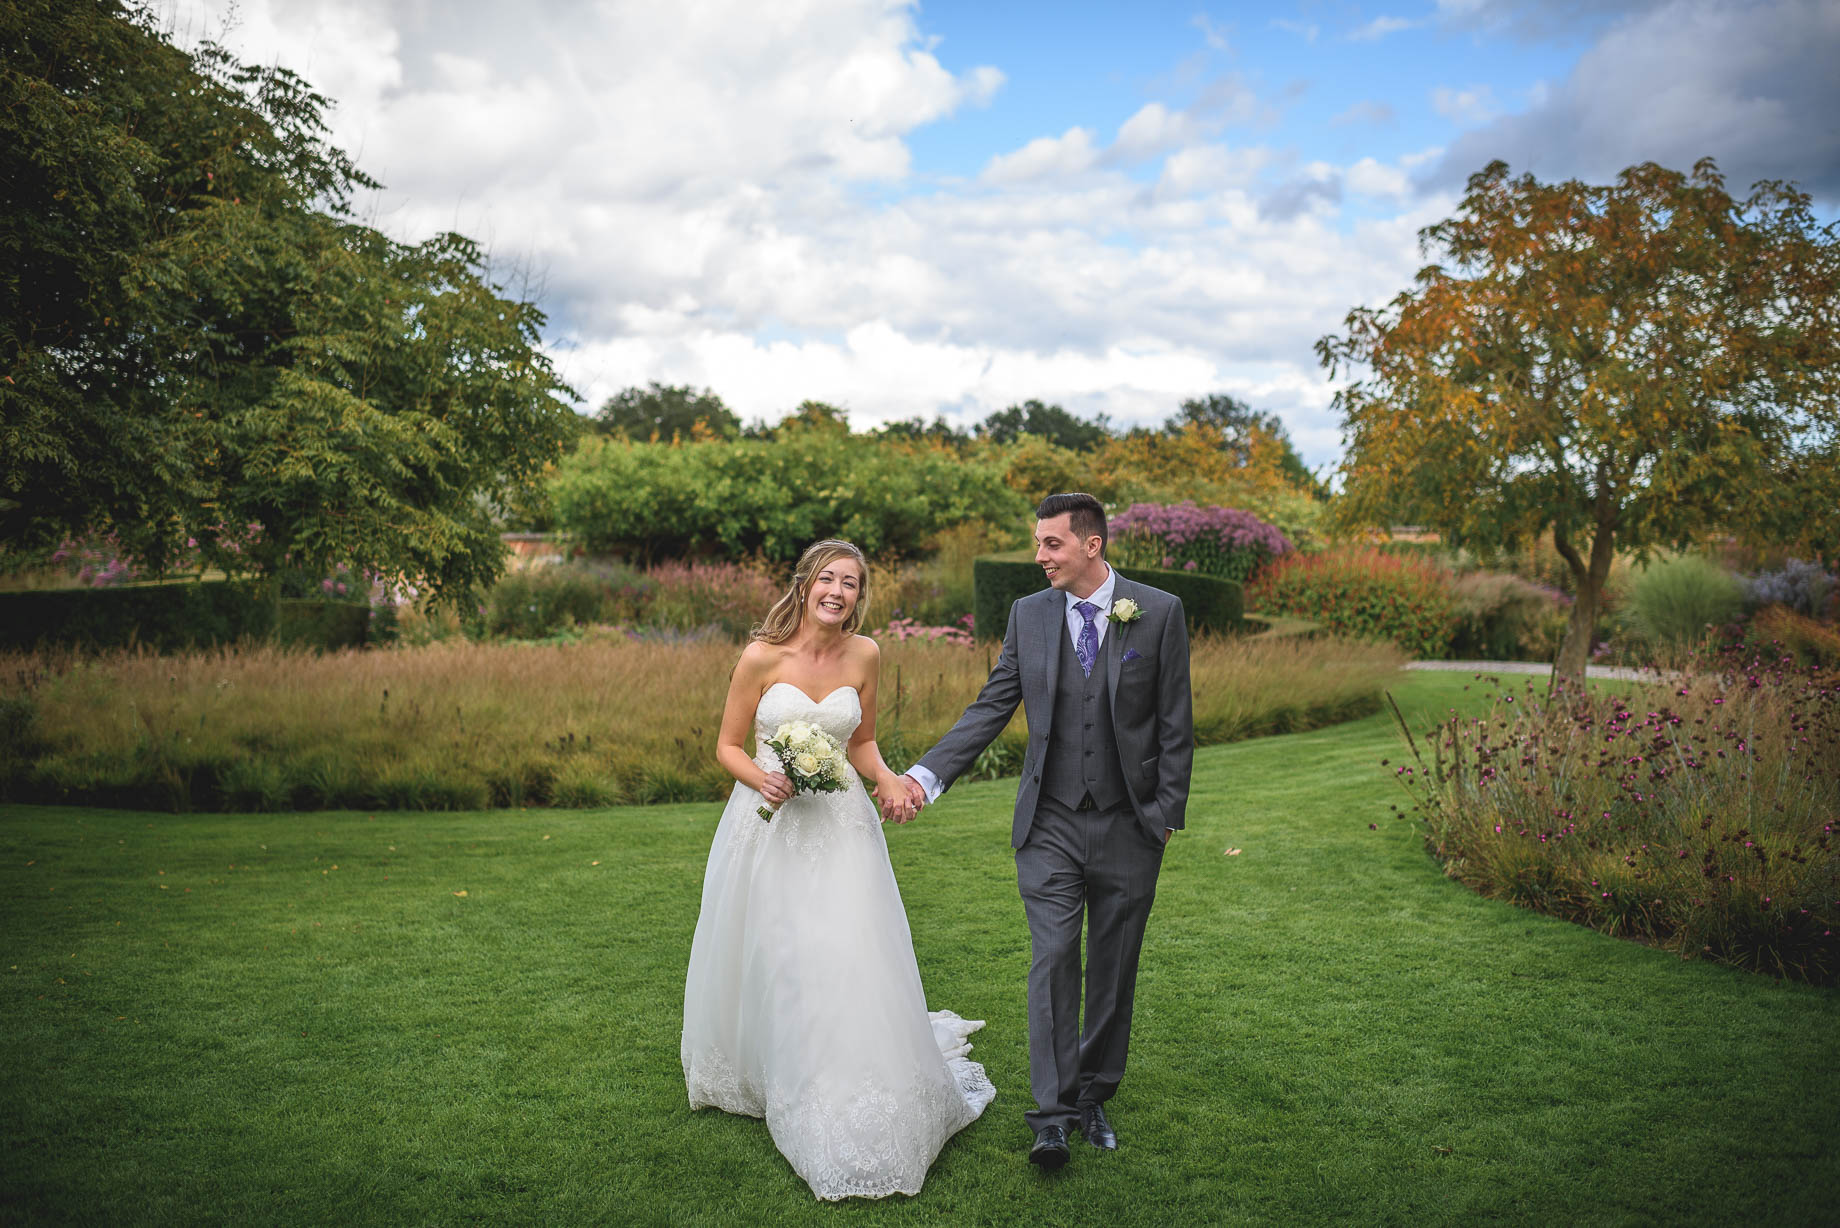 Bury Court Barn wedding photography - Guy Collier - Kirsty and Lewis (112 of 150)